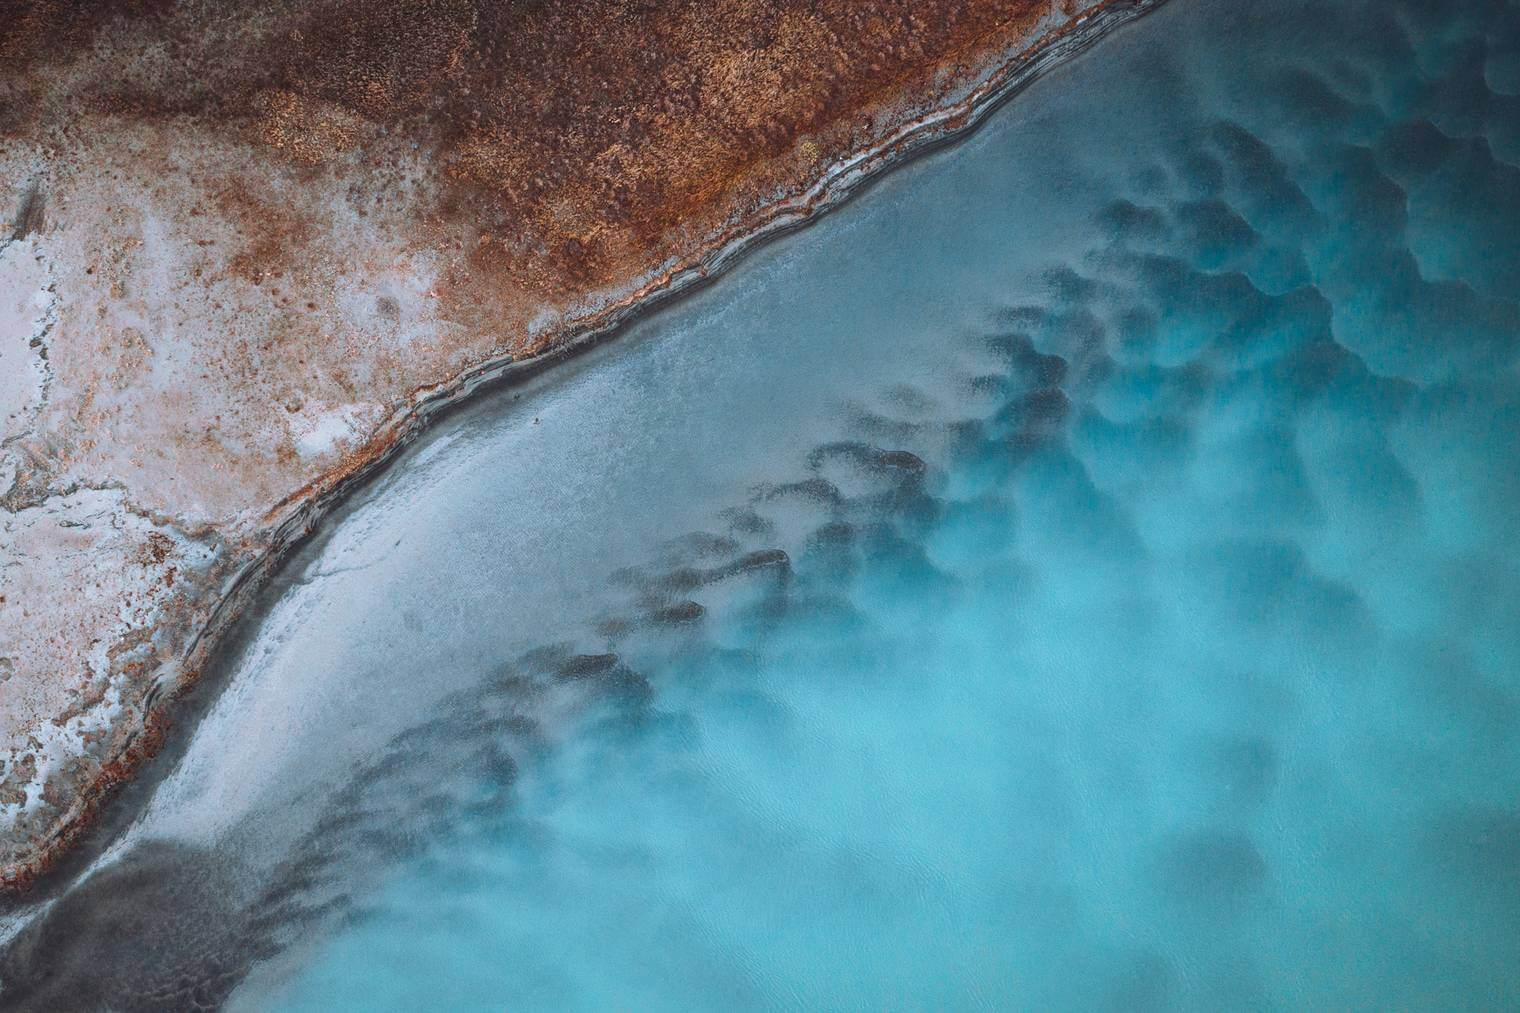 Drone Photo of River in Moody Blue Tones